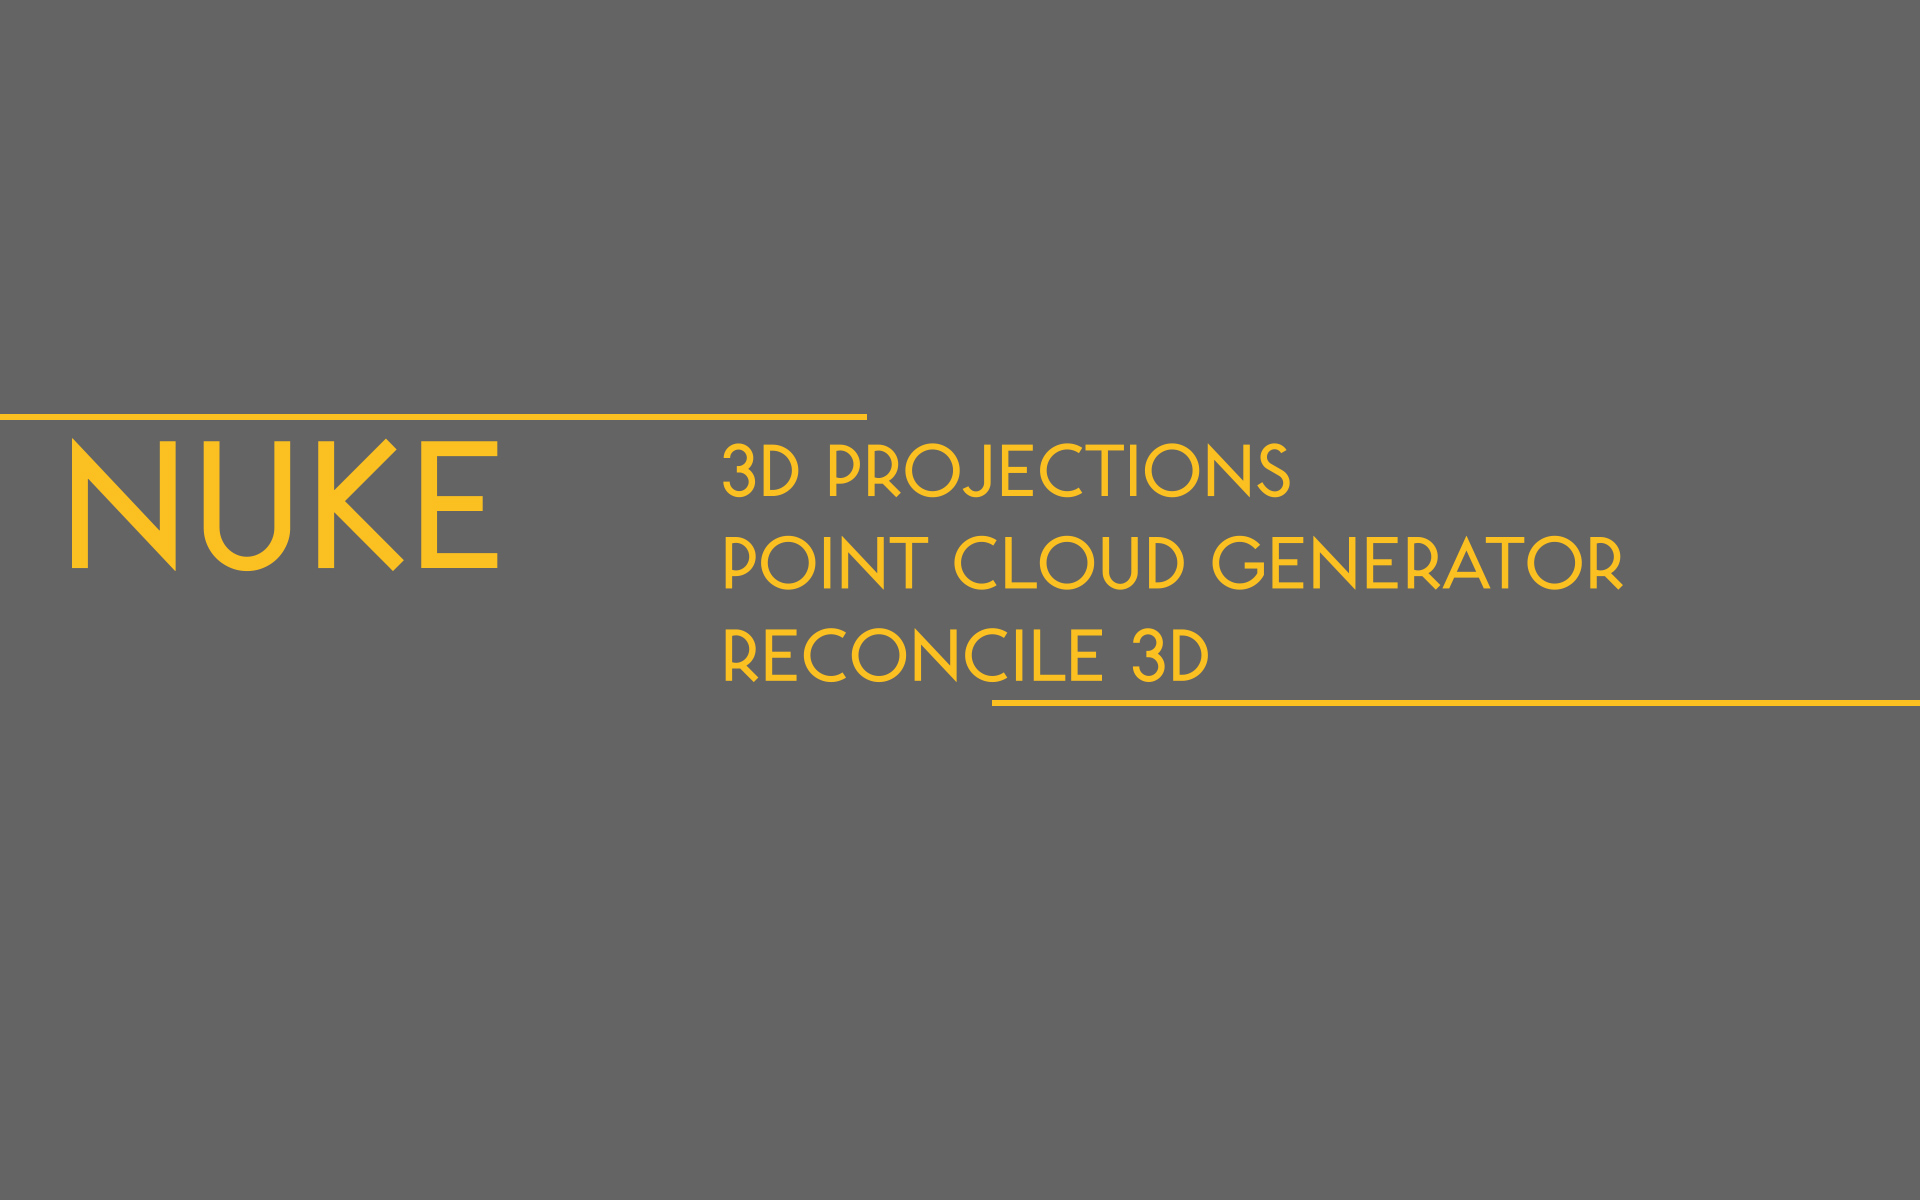 Nuke Point Cloud Generator — Joe Raasch